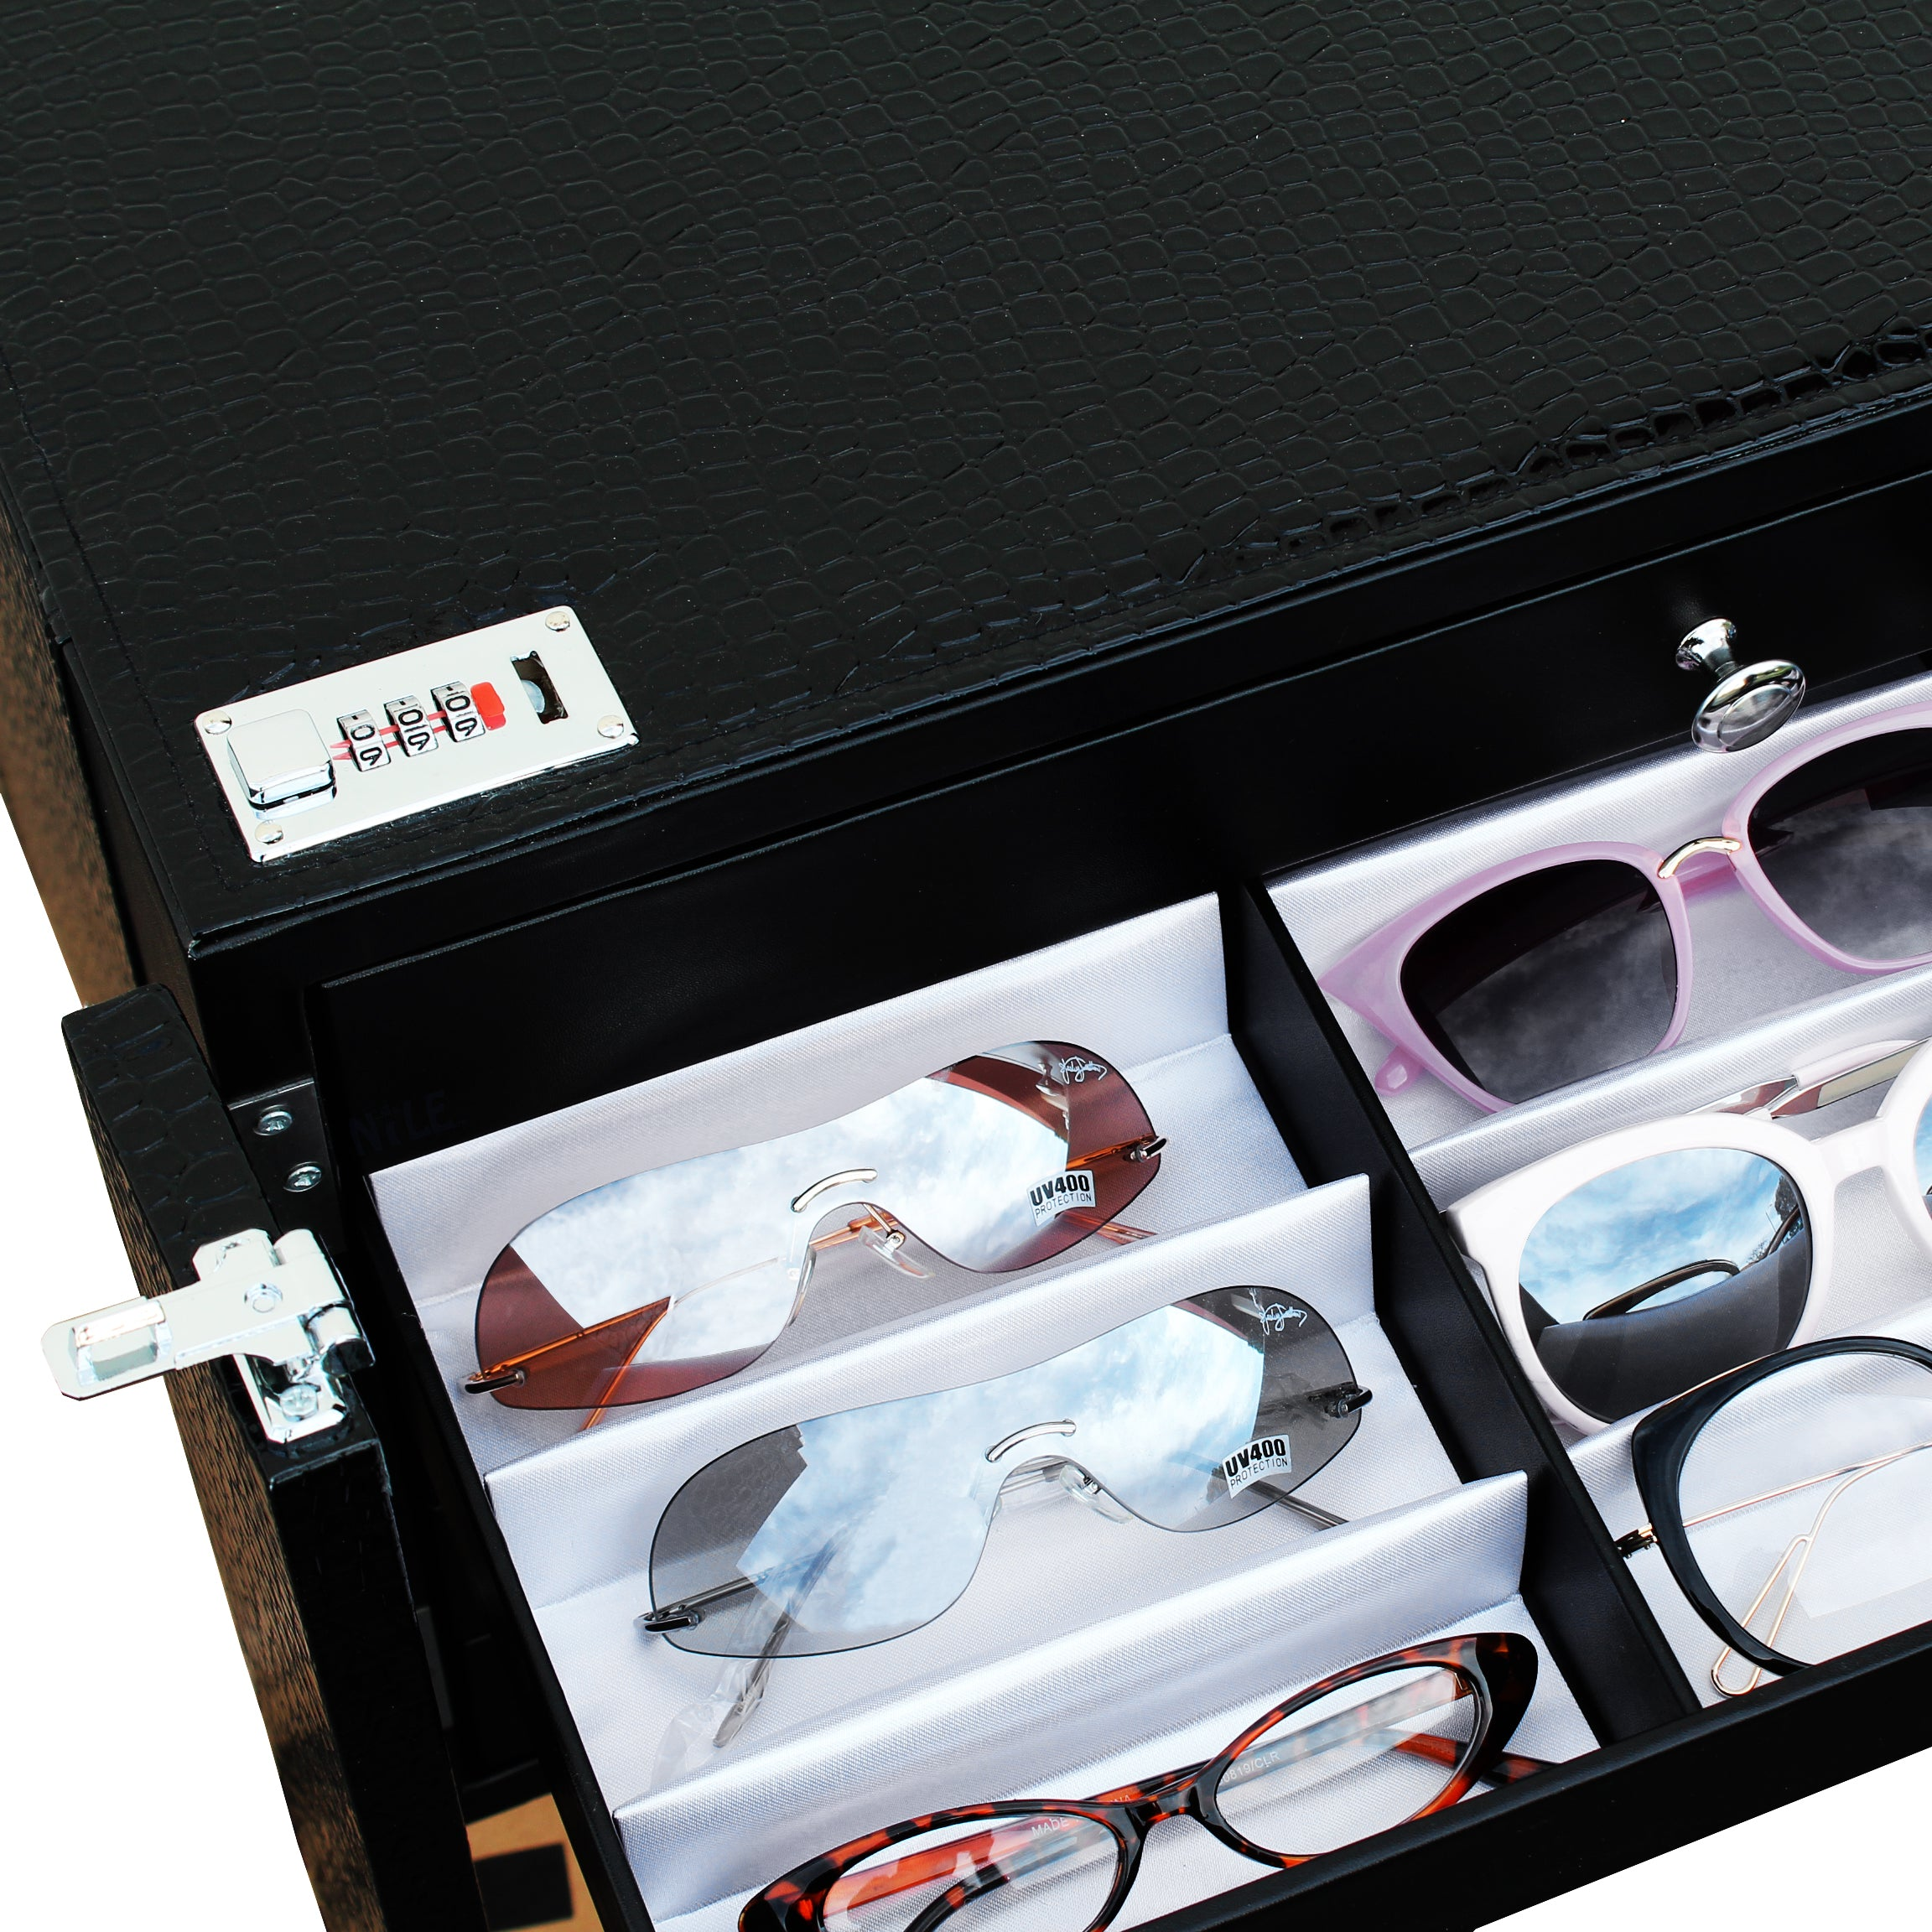 #D606-5LBK Eyewear Lockable Storage Cabinet, Include 5 Trays Holds 90 Frames